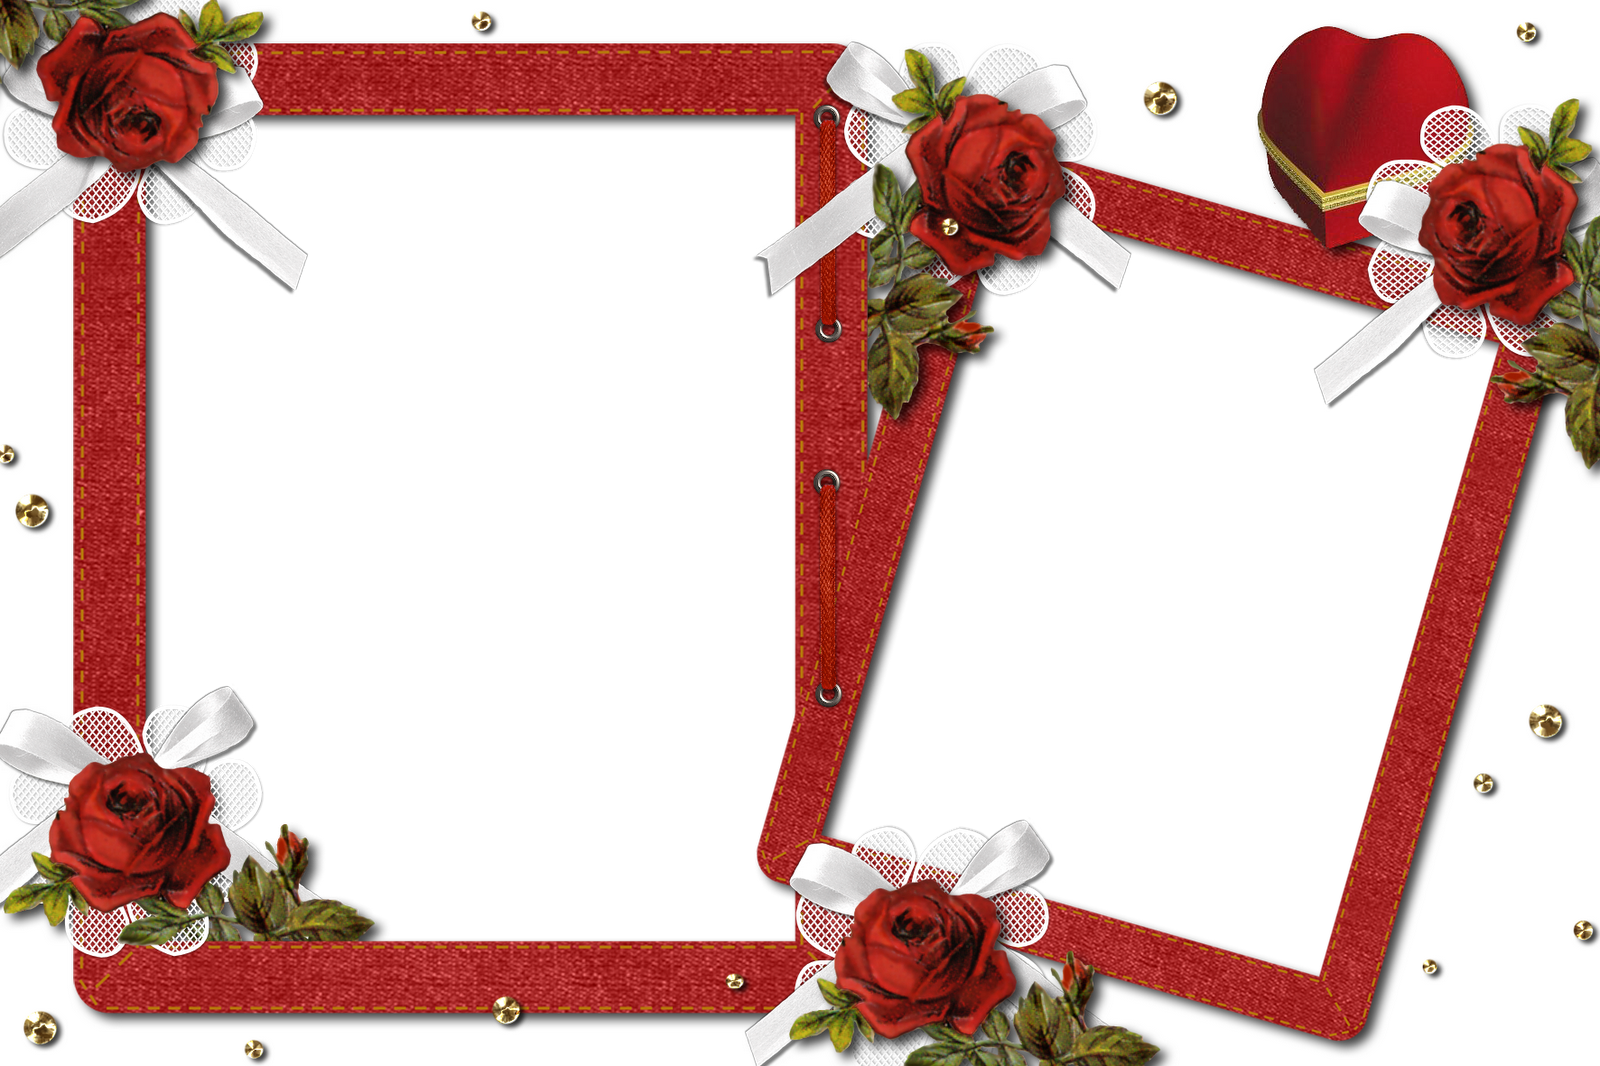 Double Romantic Transparent Photo Frame with Roses.